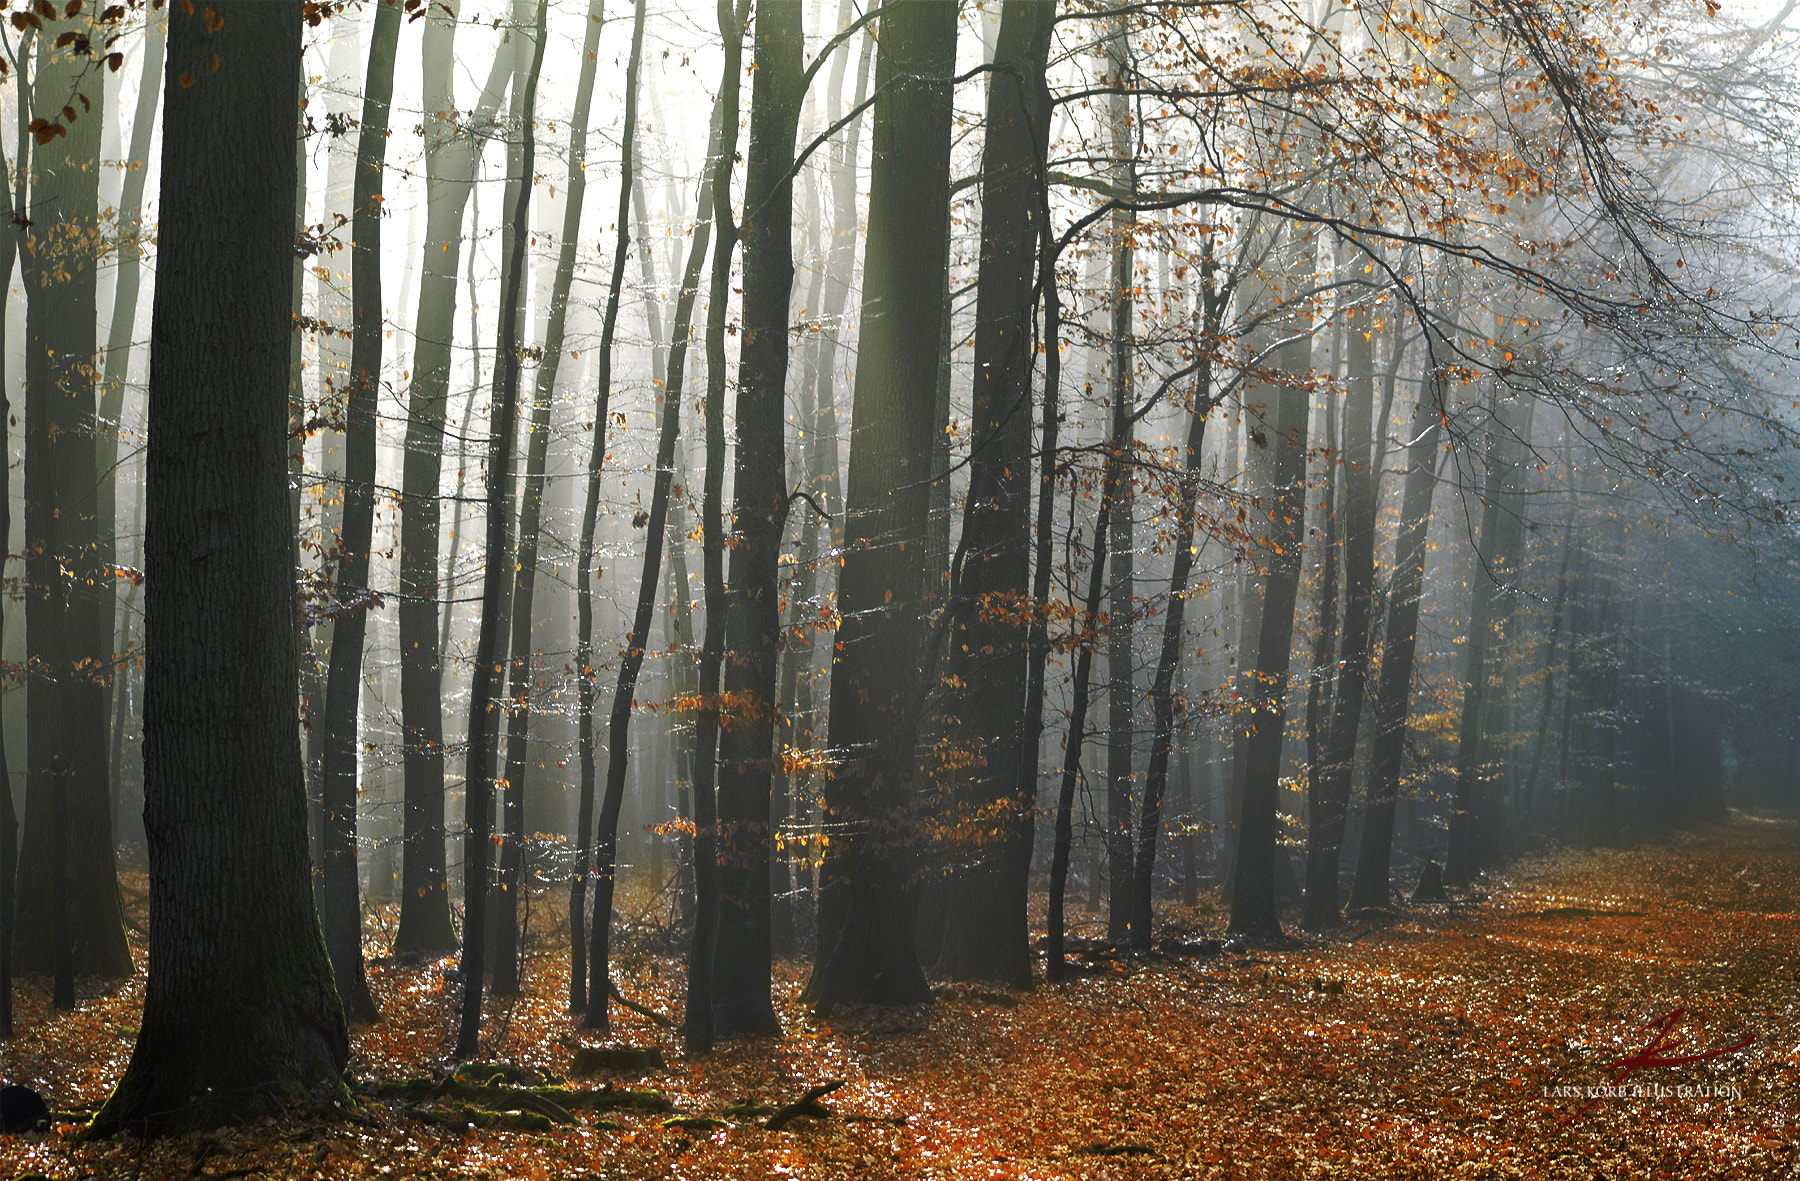 Photograph Humidity of November by Lars Korb on 500px